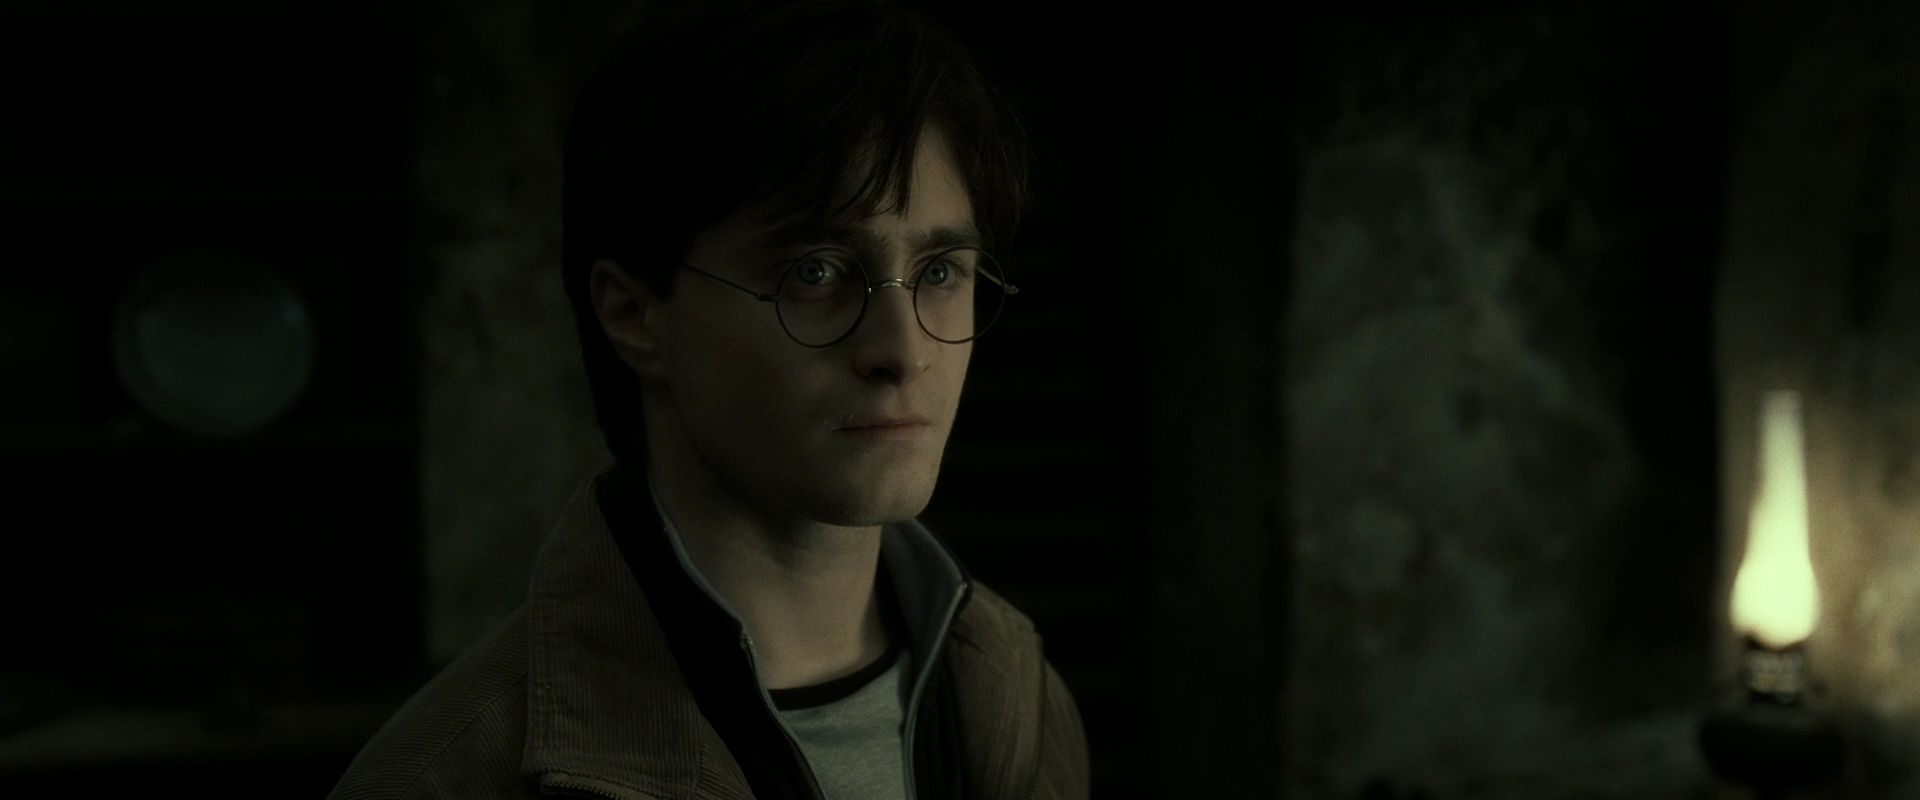 Harry Potter And The Deathly Hallows Part 2 Кряк.Rar